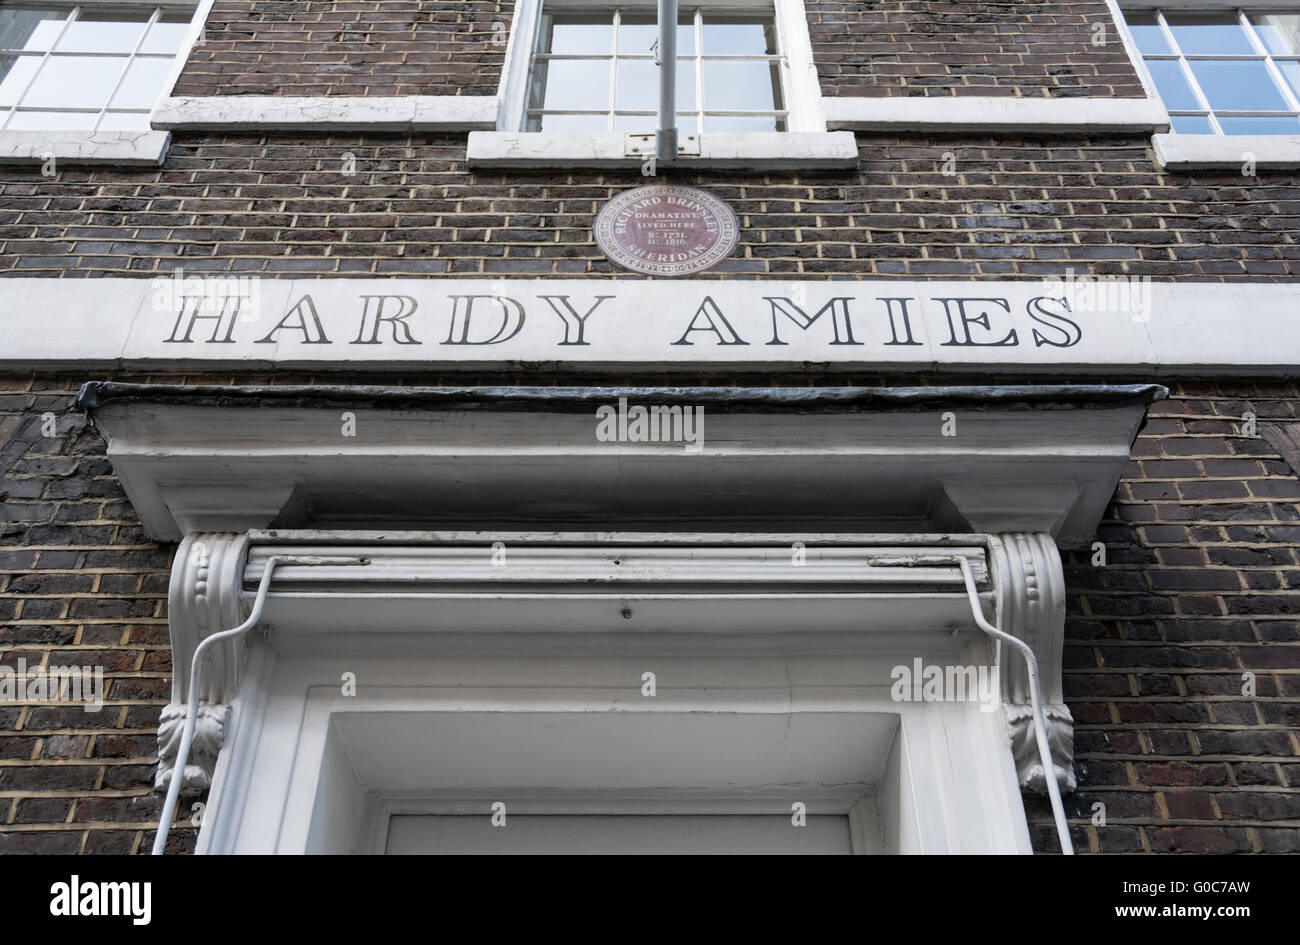 Plaque outside Hardy Amies, Bespoke Tailors in Saville Row, London, UK - Stock Image